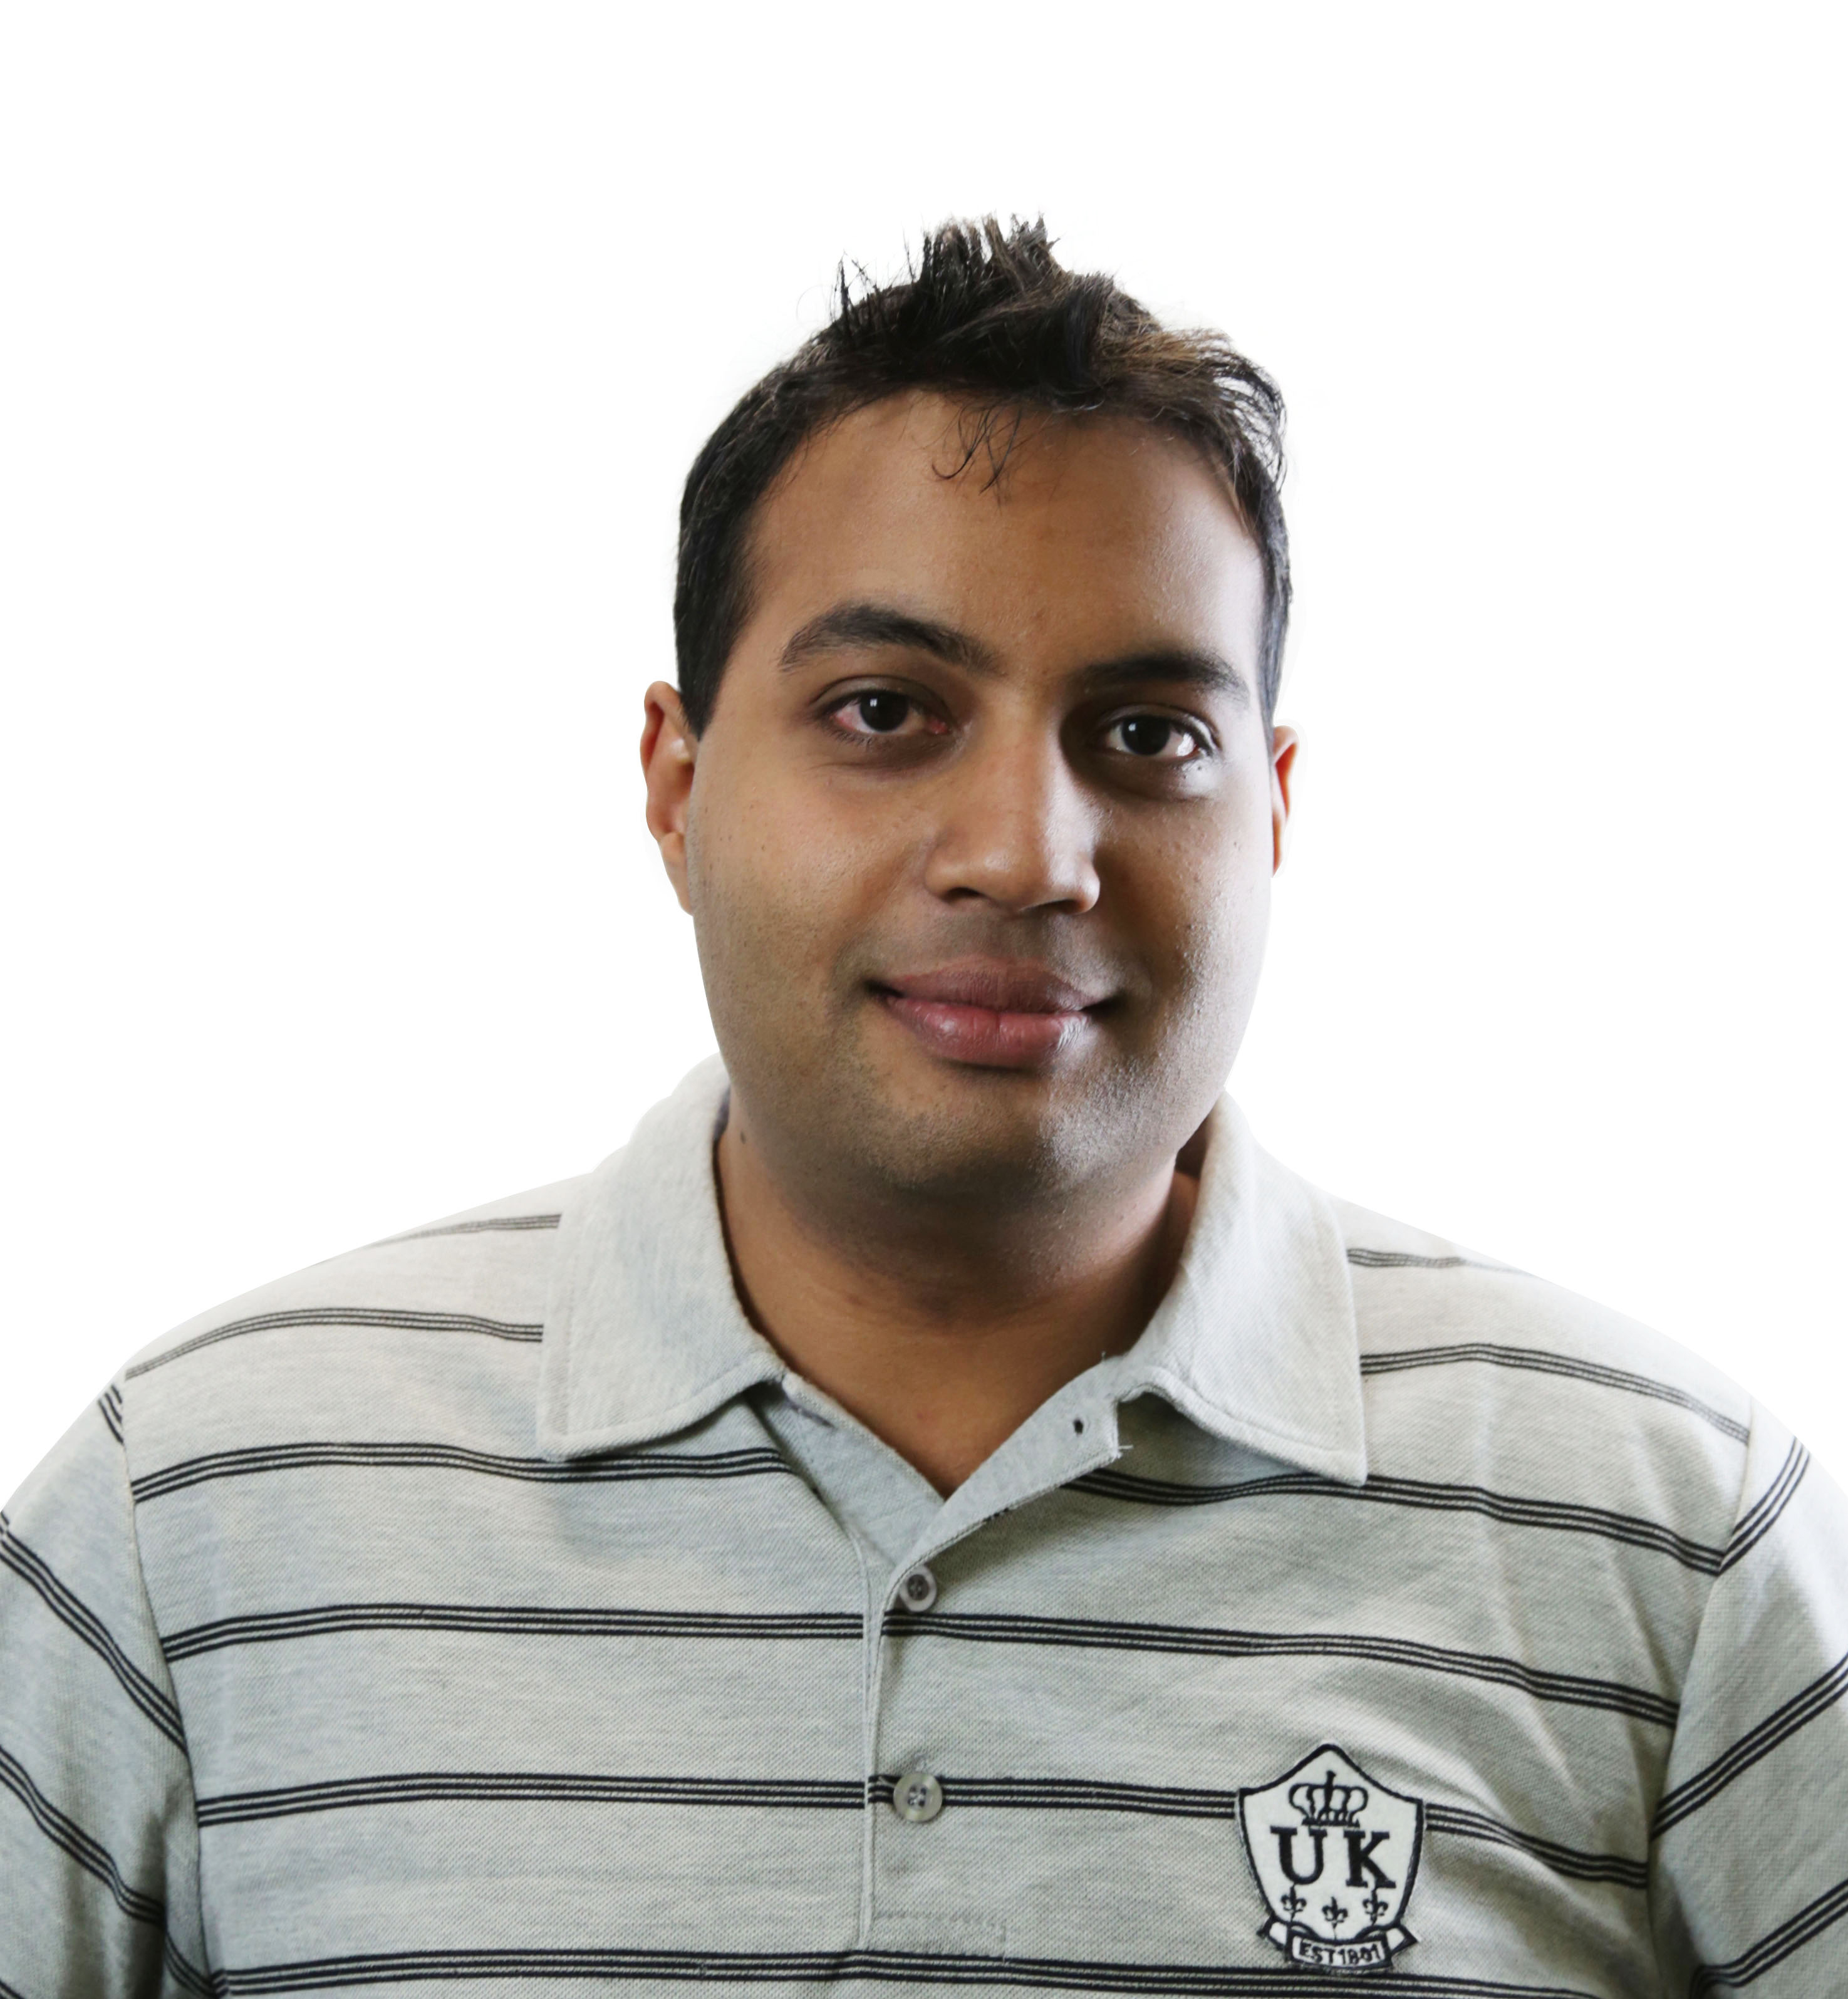 welcome randika samarasinghe who joins our mercury helpdesk team there s a new go to guy for all your helpdesk questions randika samarasinghe has recently joined us to take over from aaron cody